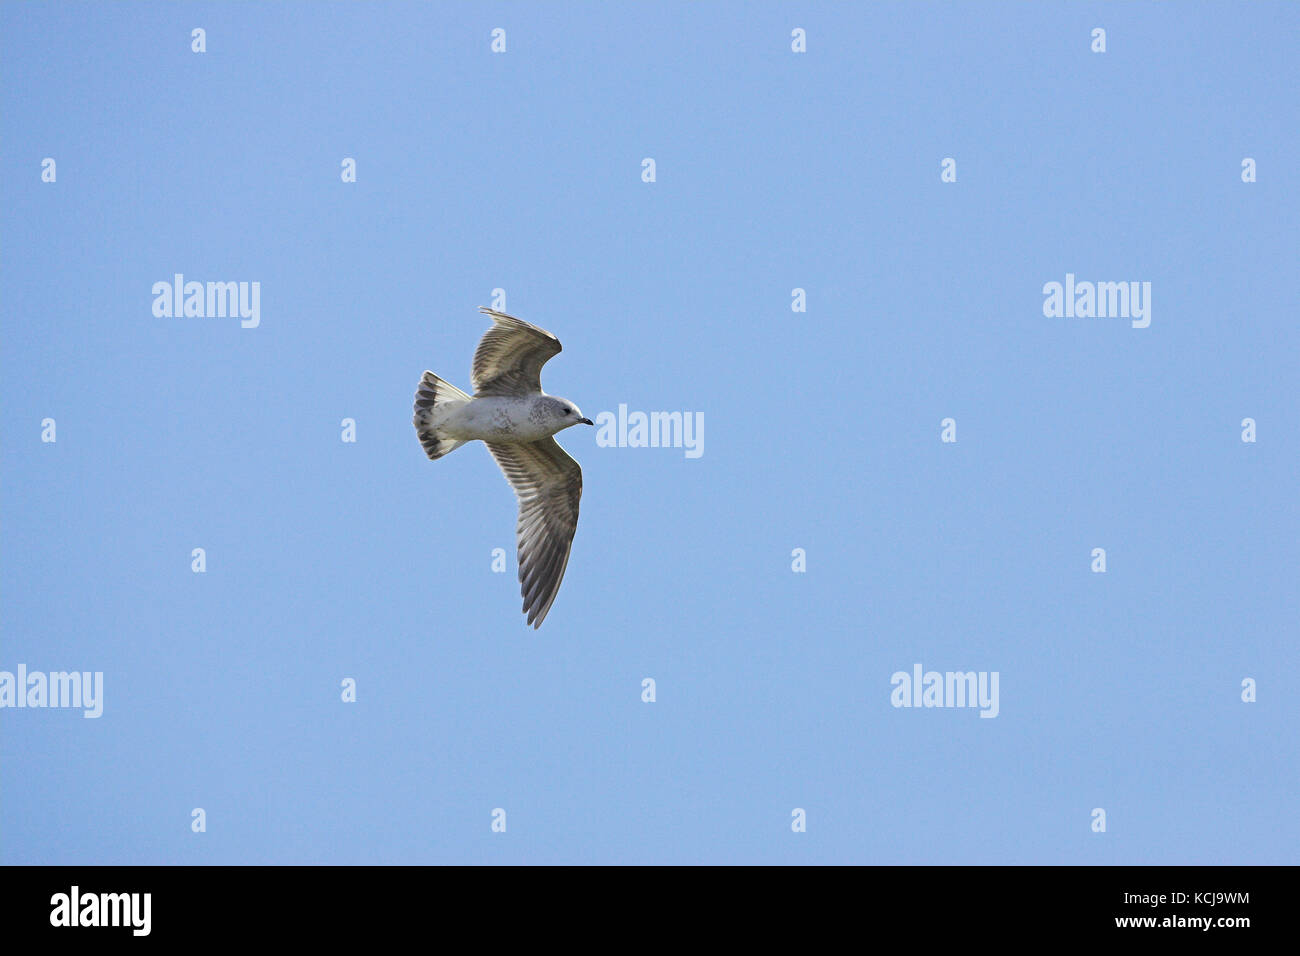 Common gull Larus canus in flight in winter plumage Islay Scotland - Stock Image